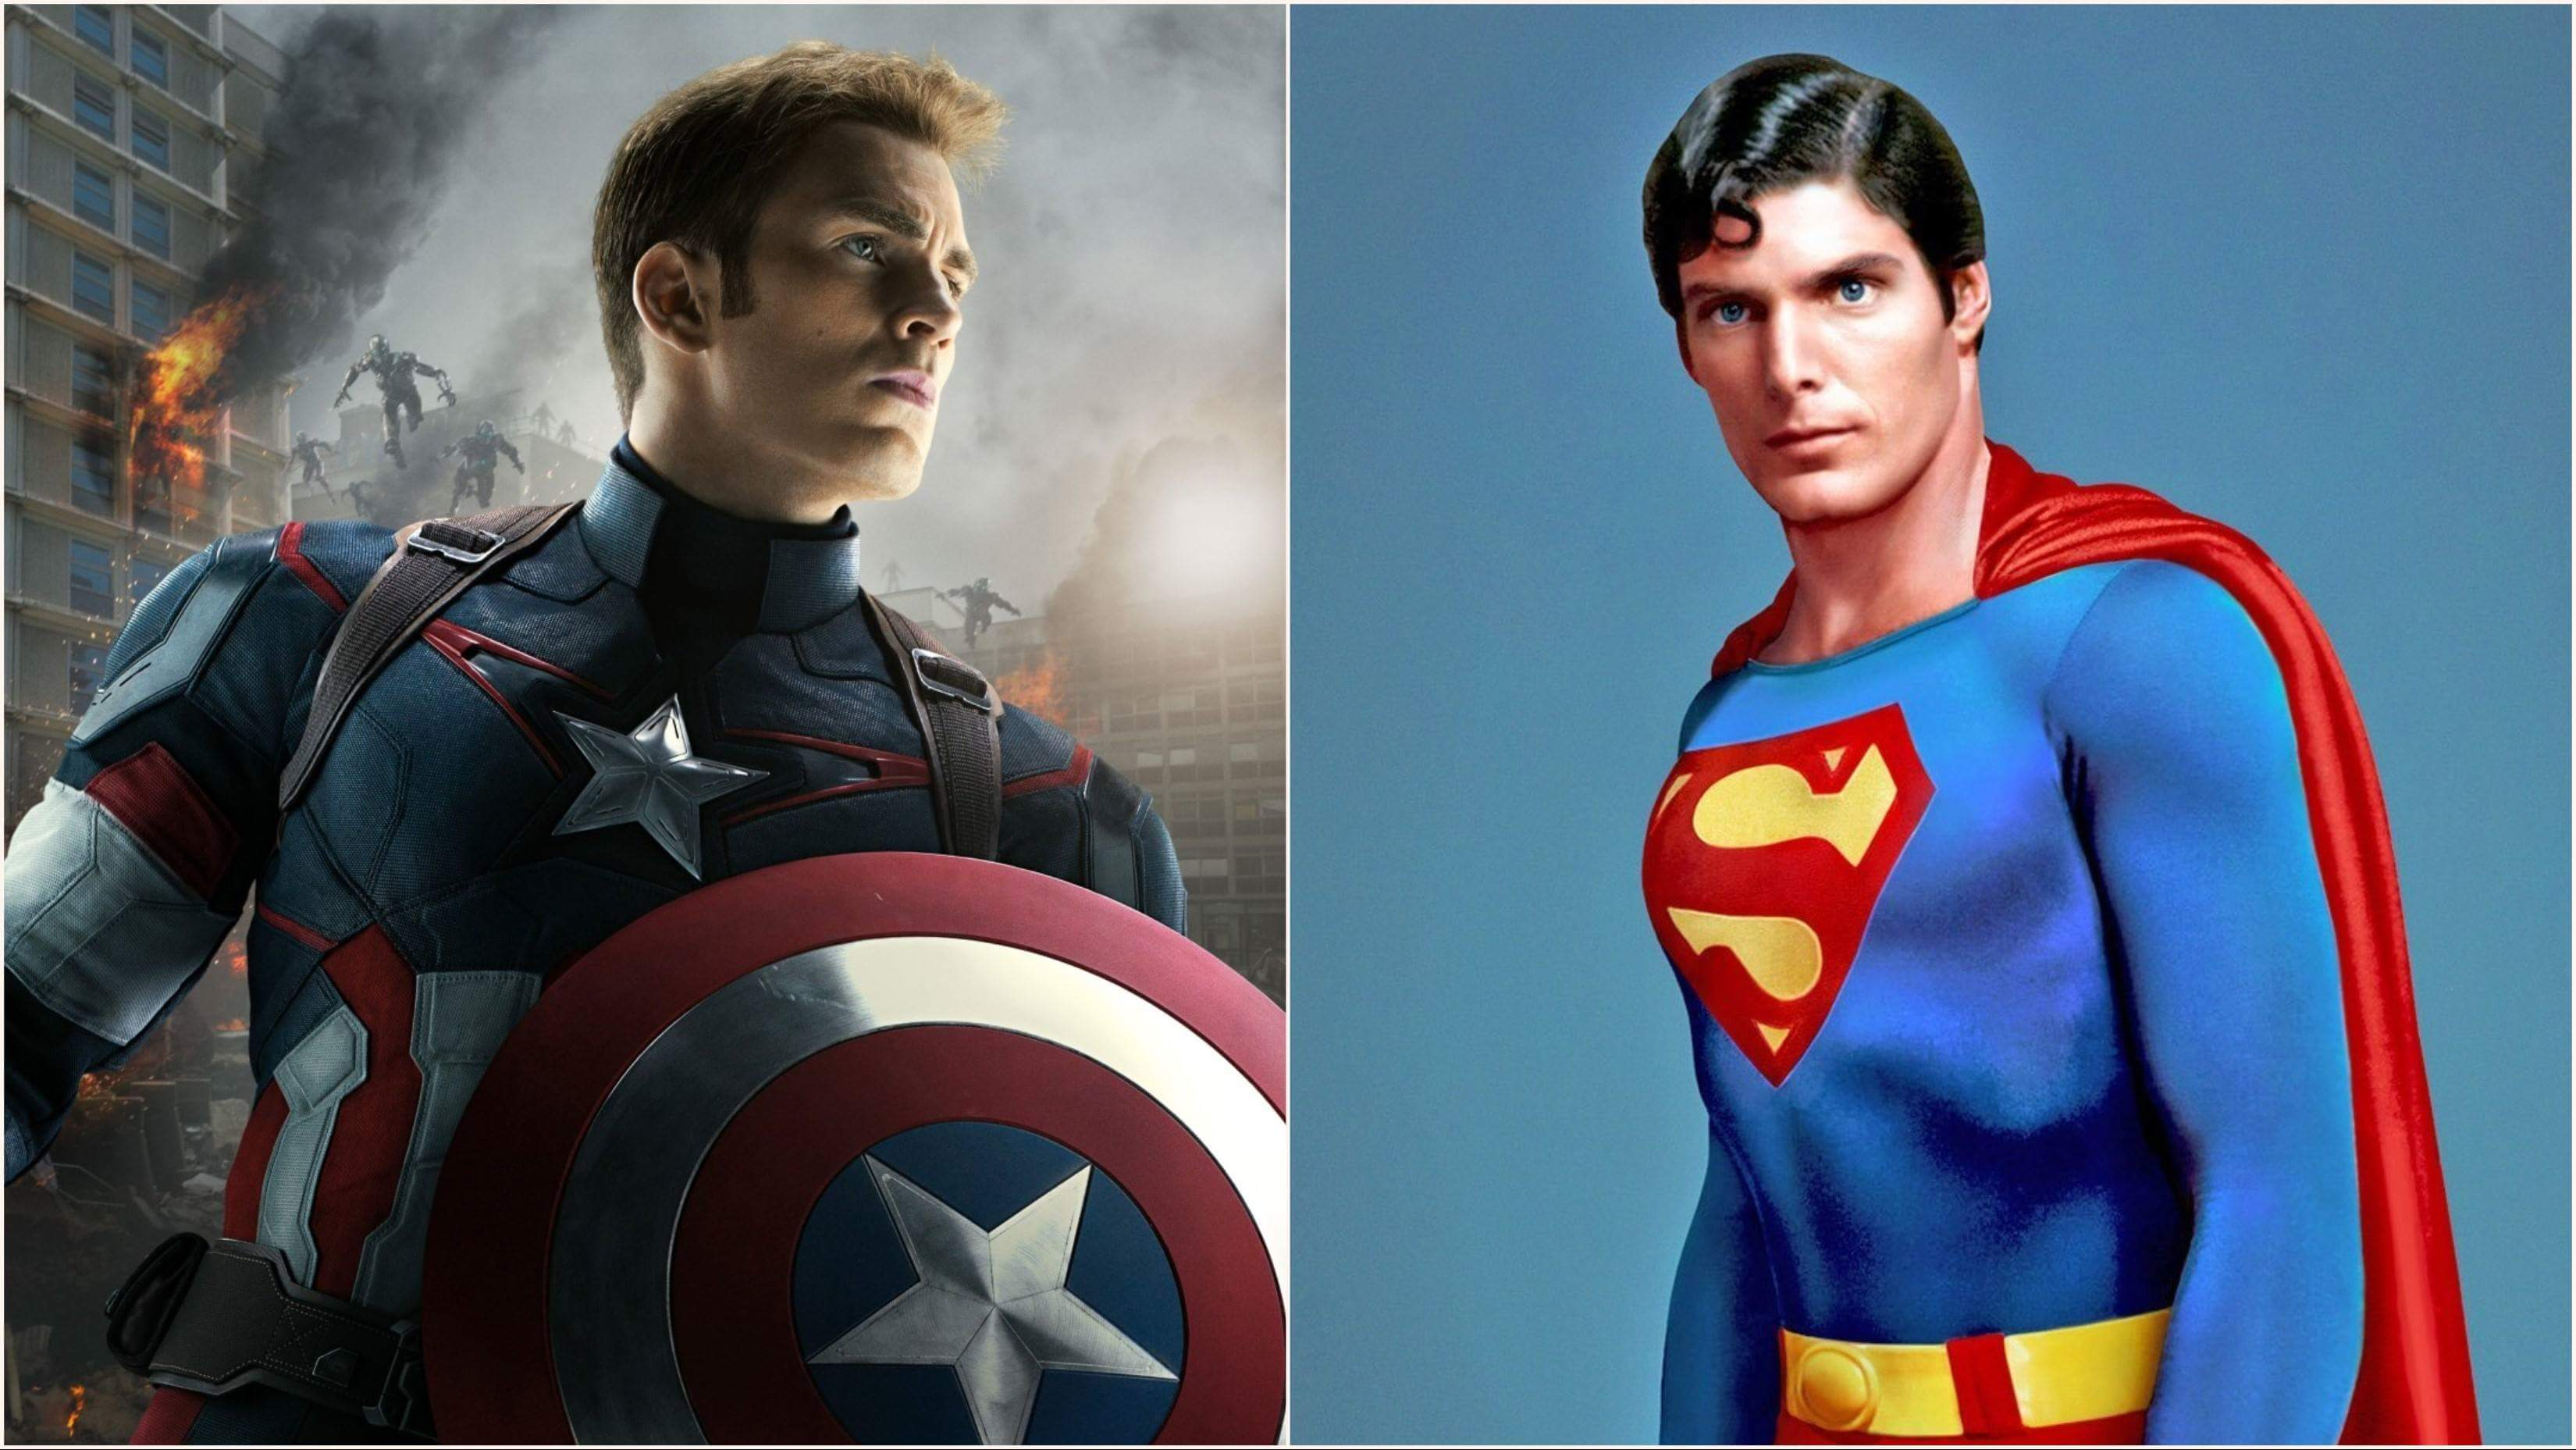 Kevin Feige Compares Chris Evans' Captain America to Christopher Reeve's Superman